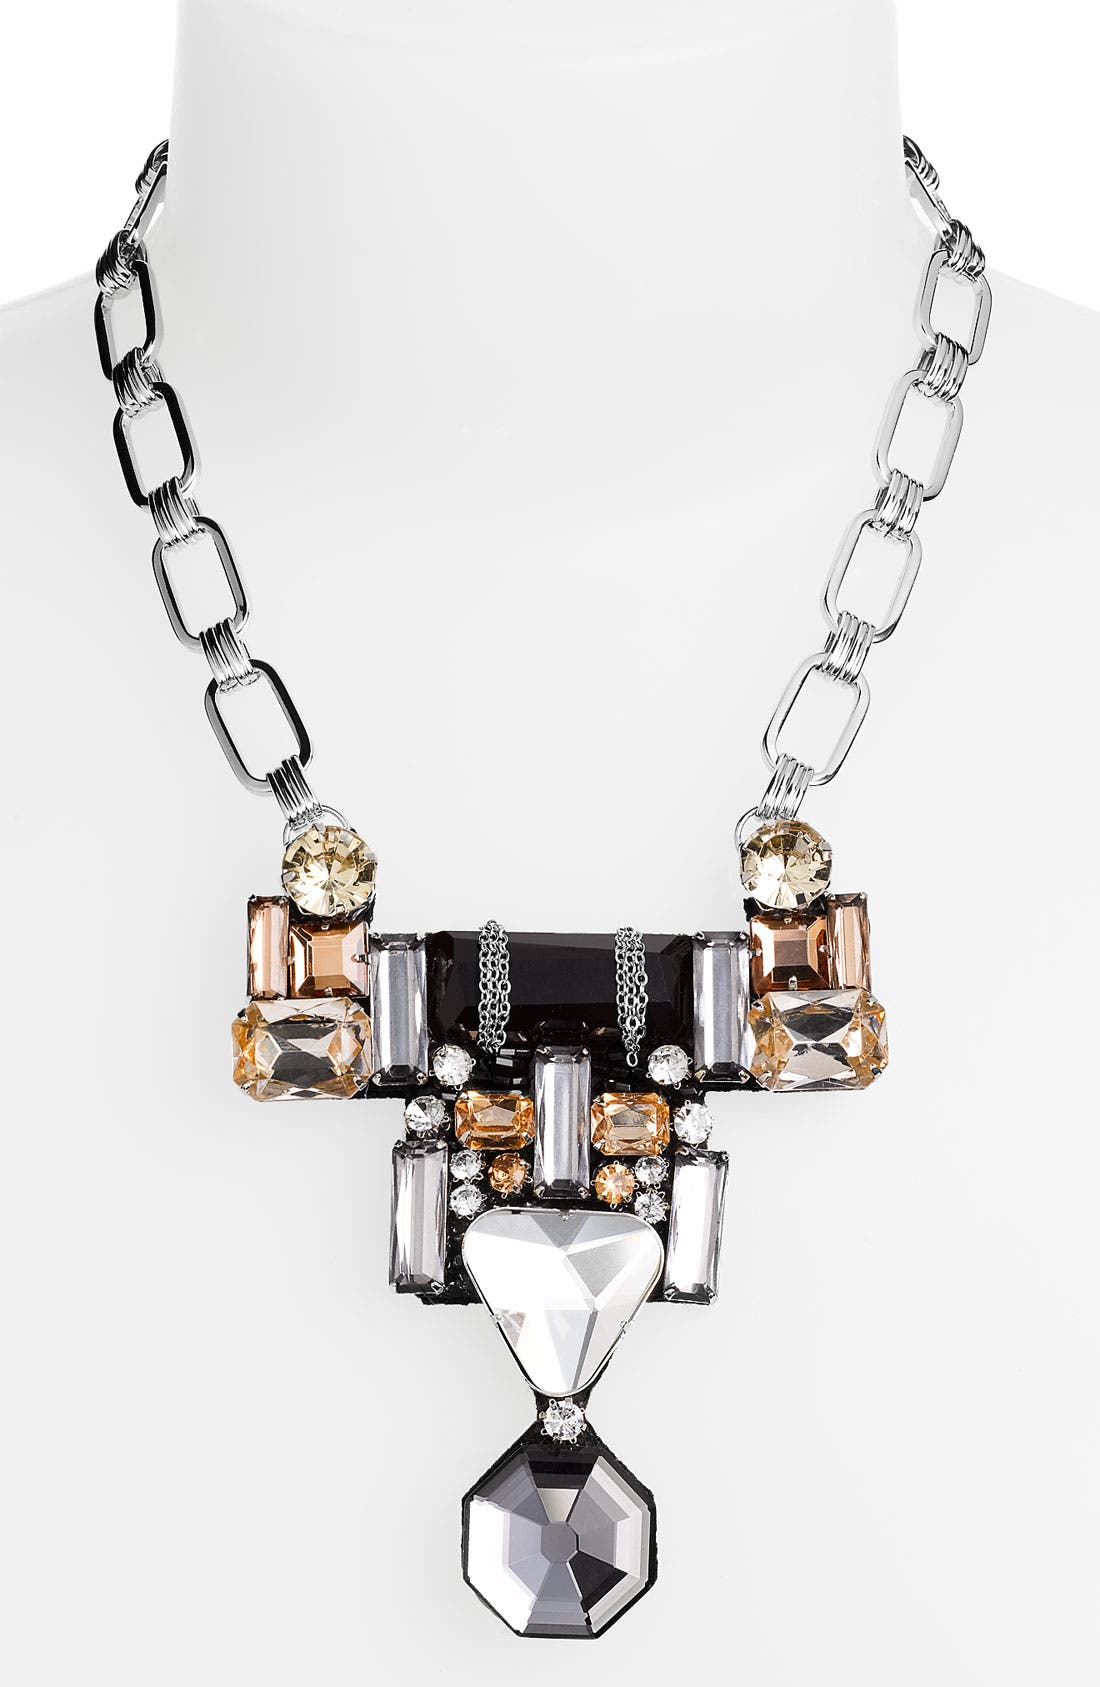 CARA, Couture Crystal Bib Statement Necklace, Main thumbnail 1, color, 040